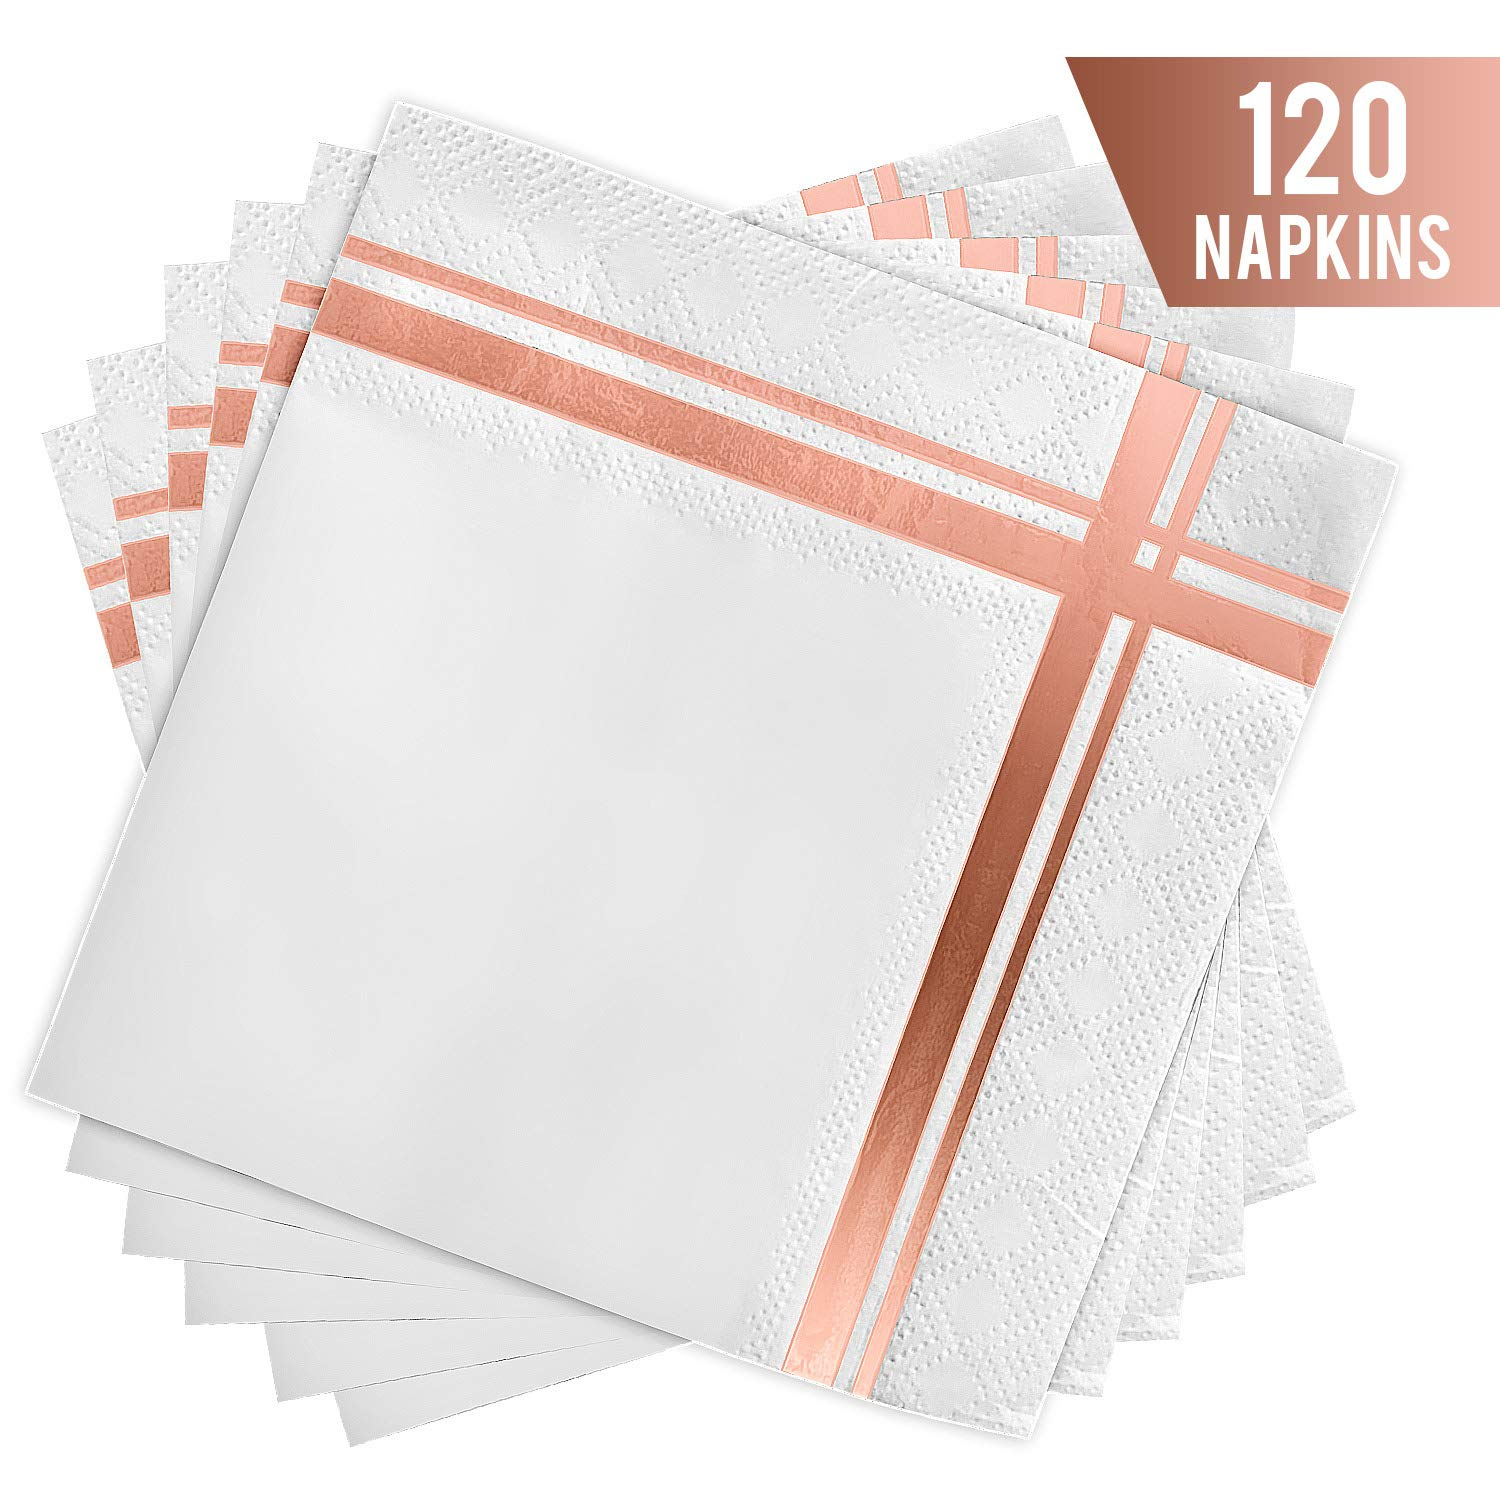 Fanxyware Rose Gold Stripe Cocktail Napkins, 3-ply, 120 Pack, 5'' x 5'' - White Cocktail Napkin with Foil Rose Gold Stripe Design - Rose Gold Party Decorations - Shiny Rose Gold Beverage Wedding Napkins by Fanxyware